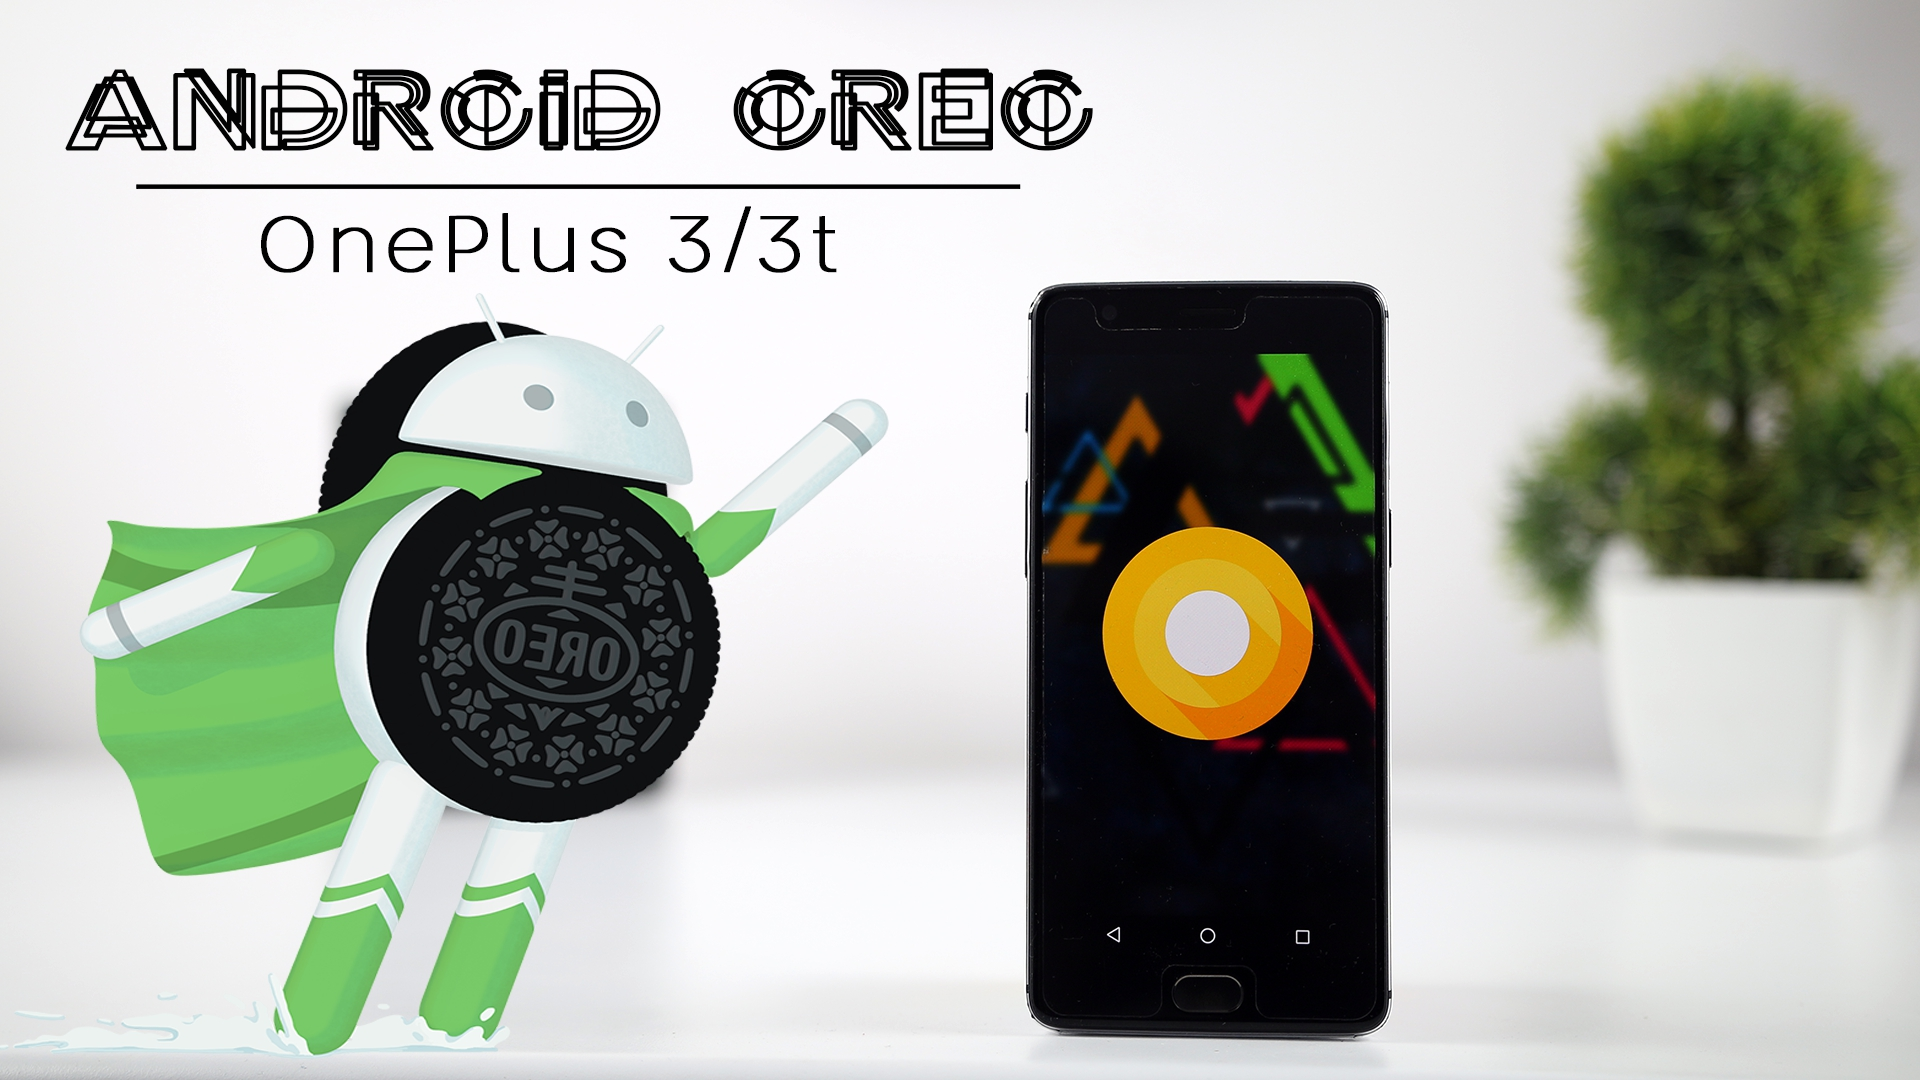 Official Oxygen OS Android Oreo 8.0 For OnePlus 3/